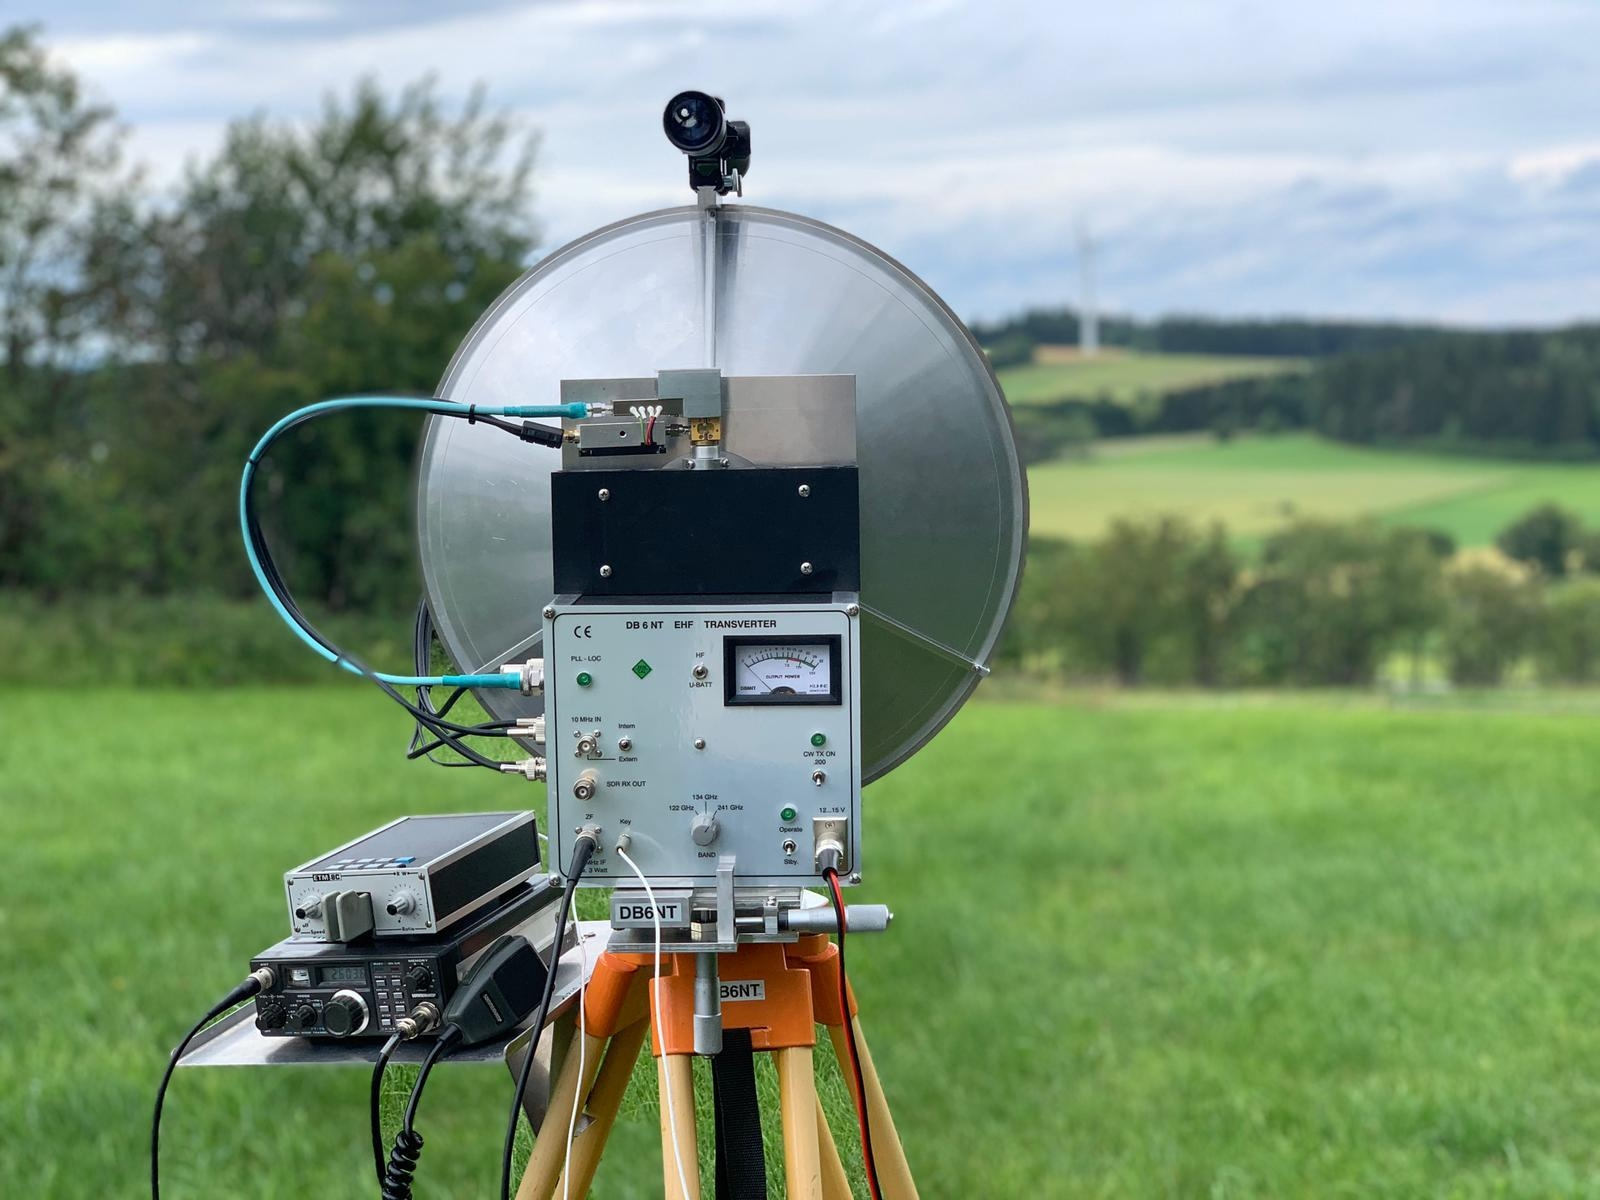 DB6NT first 725GHz QSO